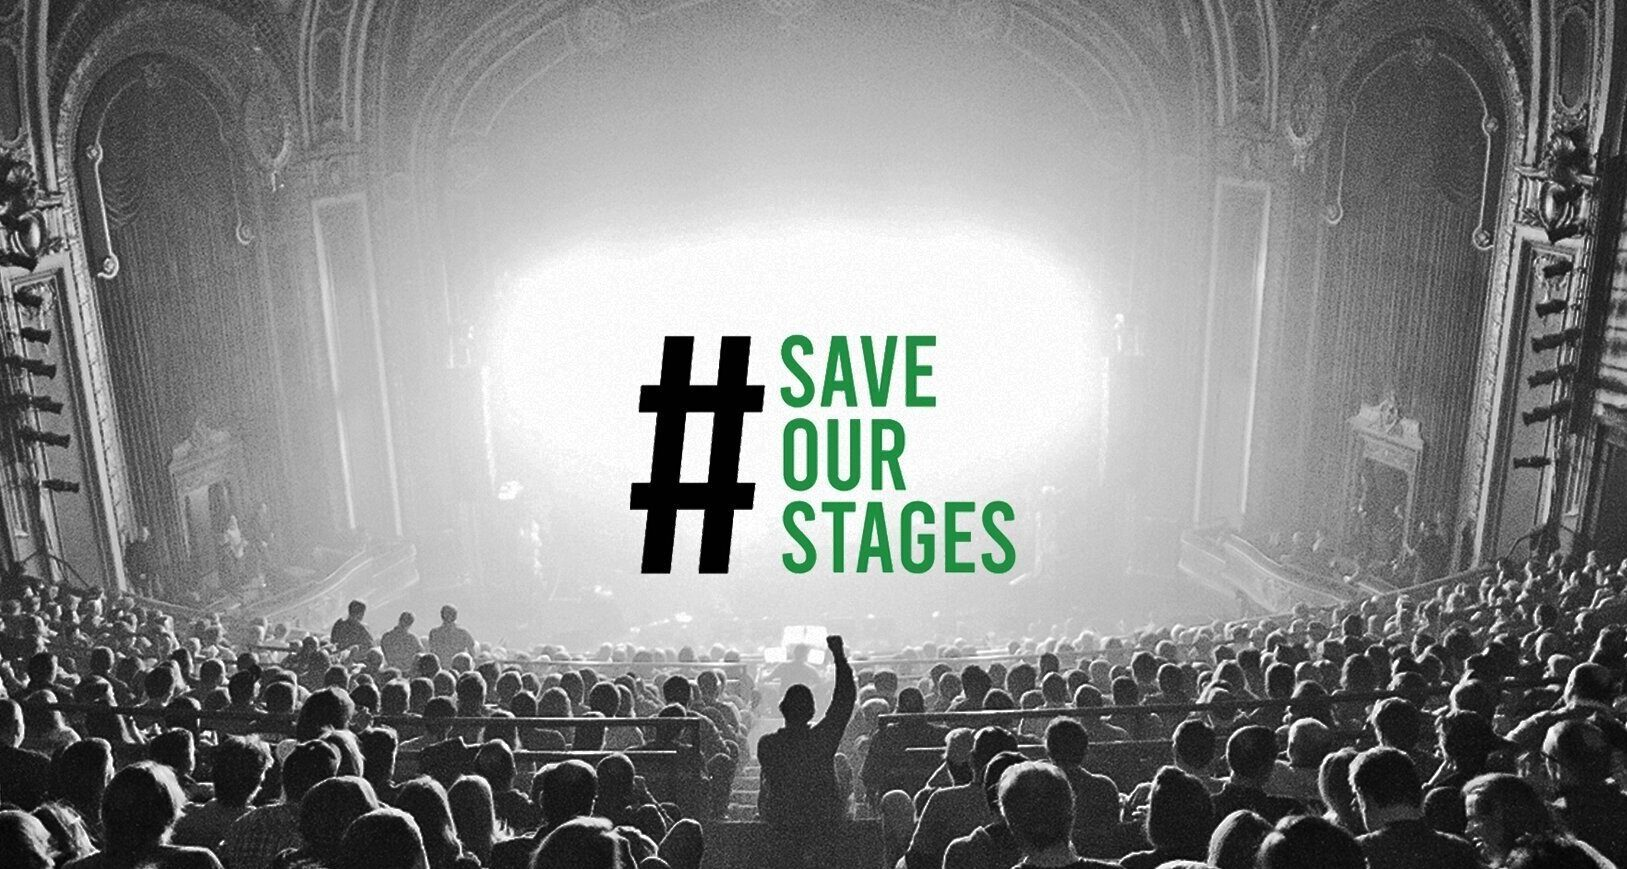 save-our-stages-